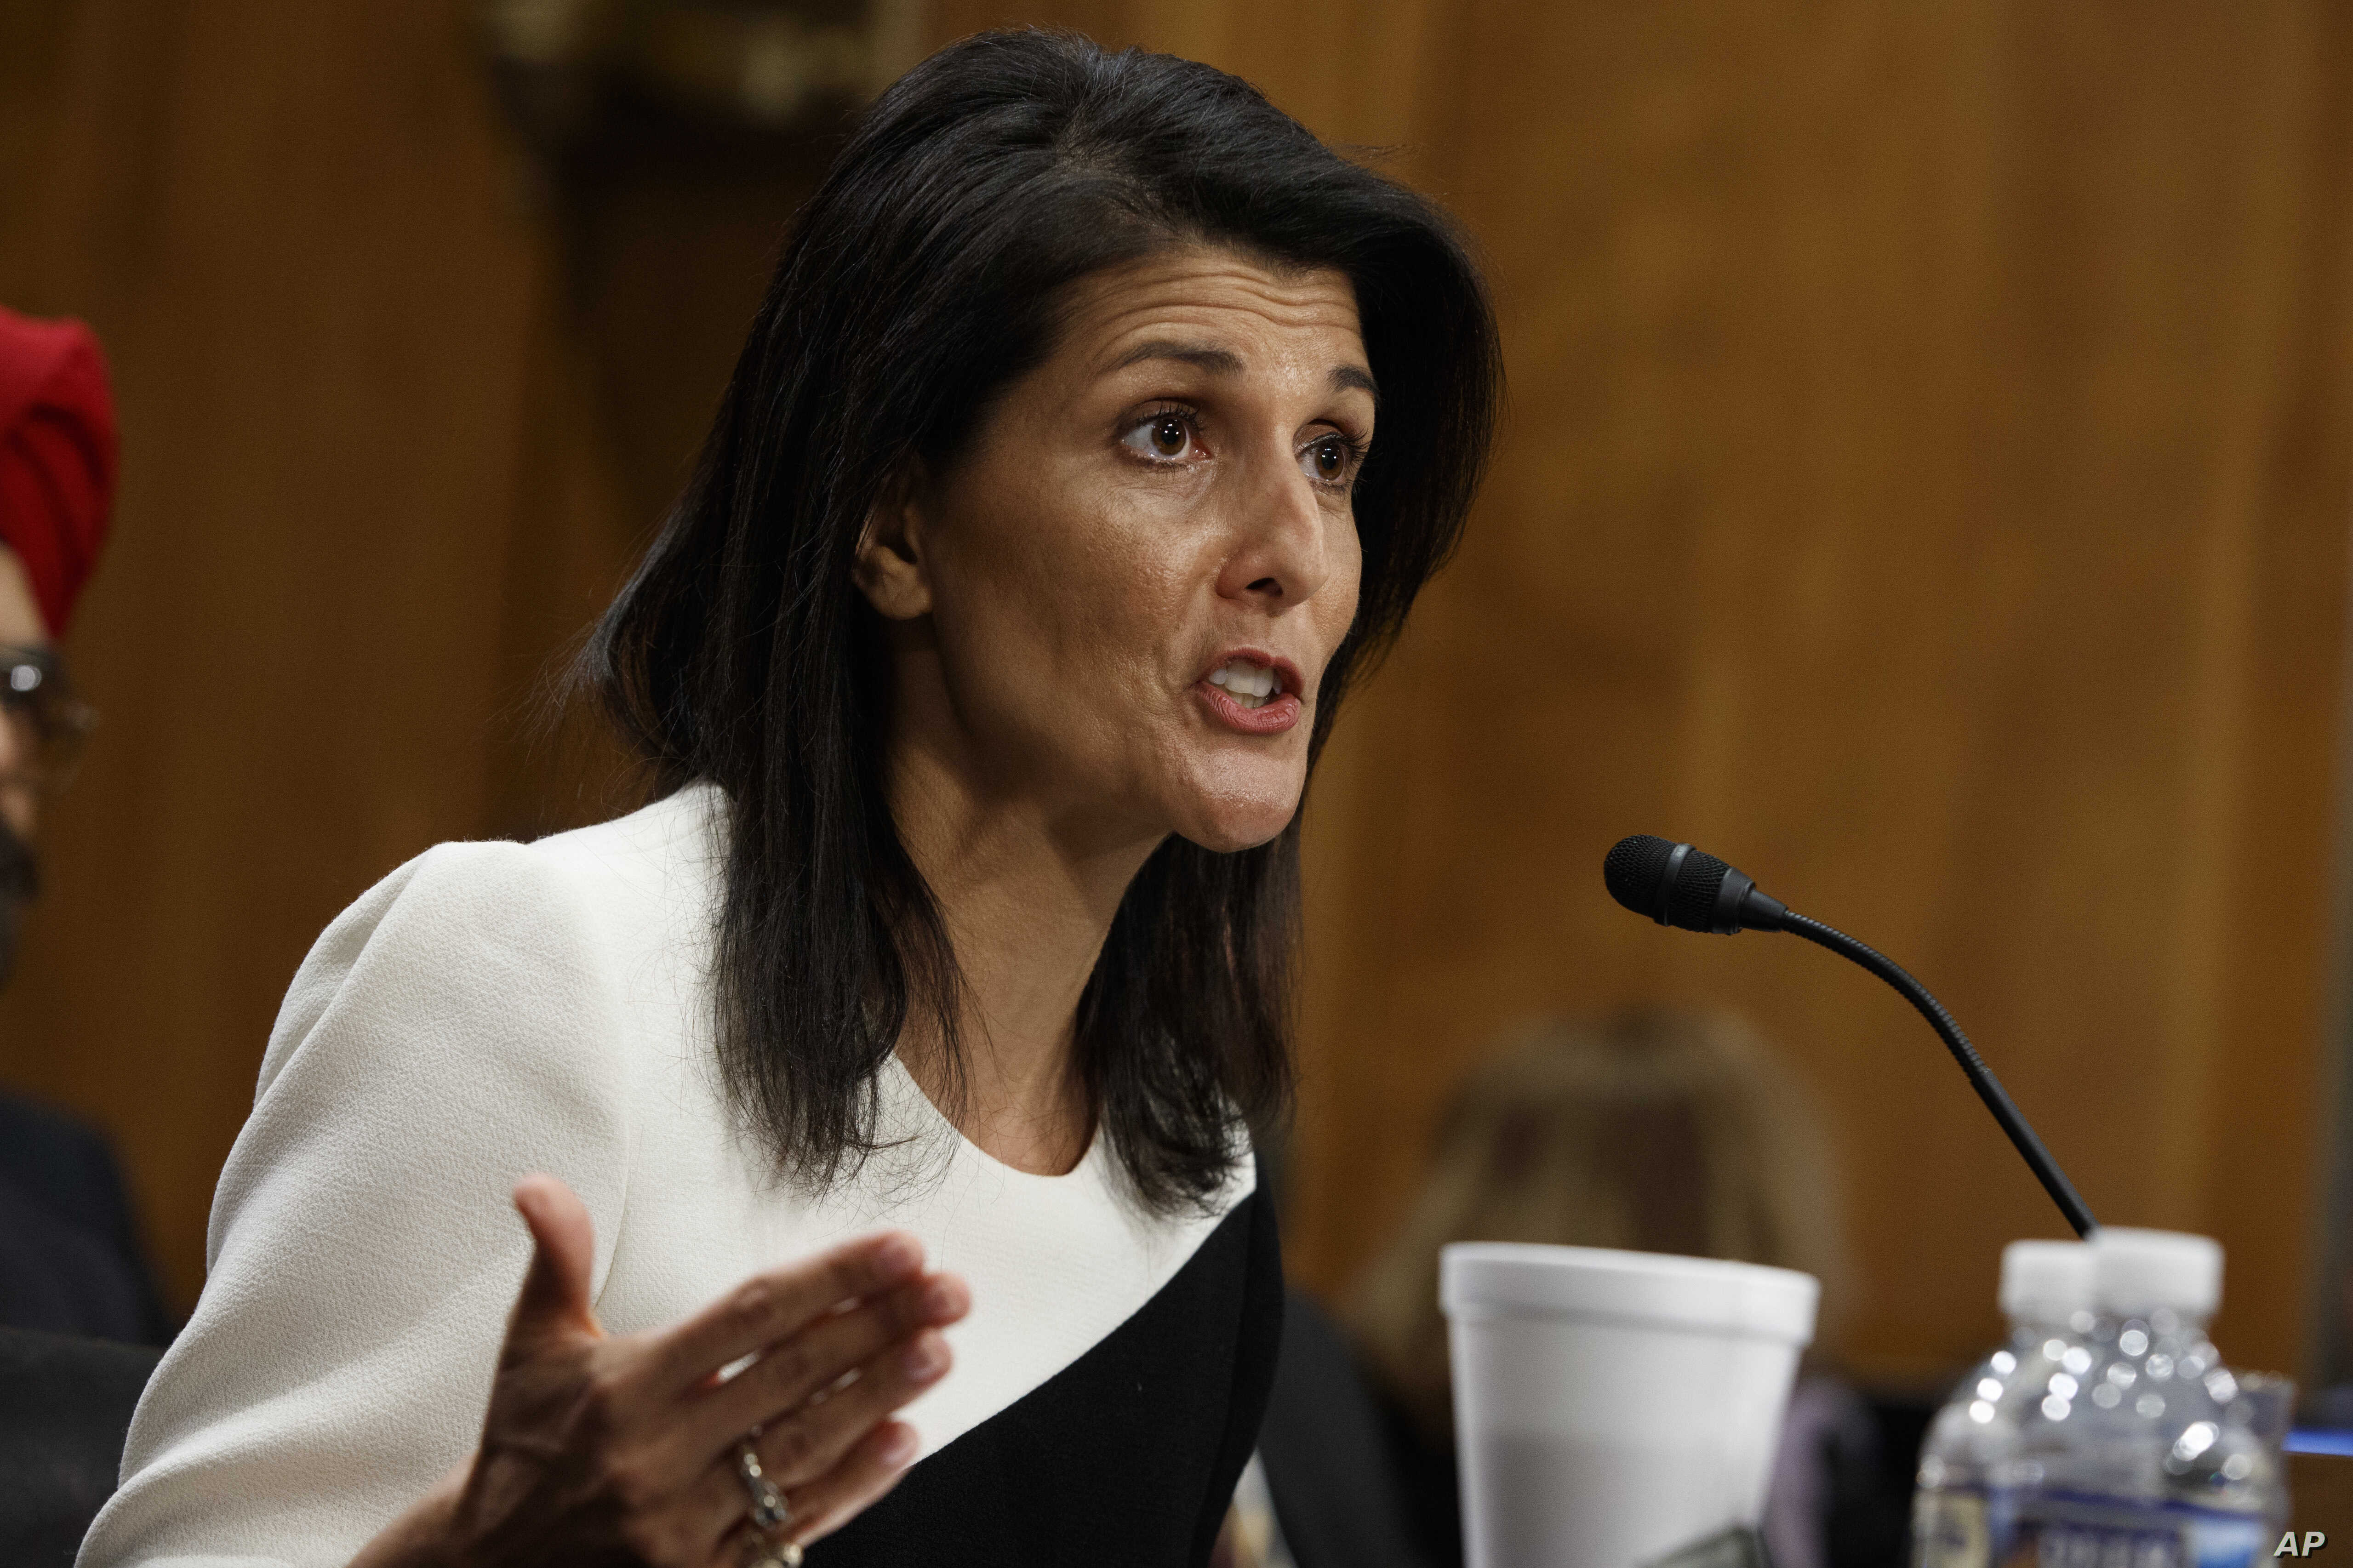 UN Ambassador-designate, South Carolina Gov. Nikki Haley testifies on Capitol Hill in Washington, Jan. 18, 2017, at her conformation hearing before the Senate Foreign Relations Committee.